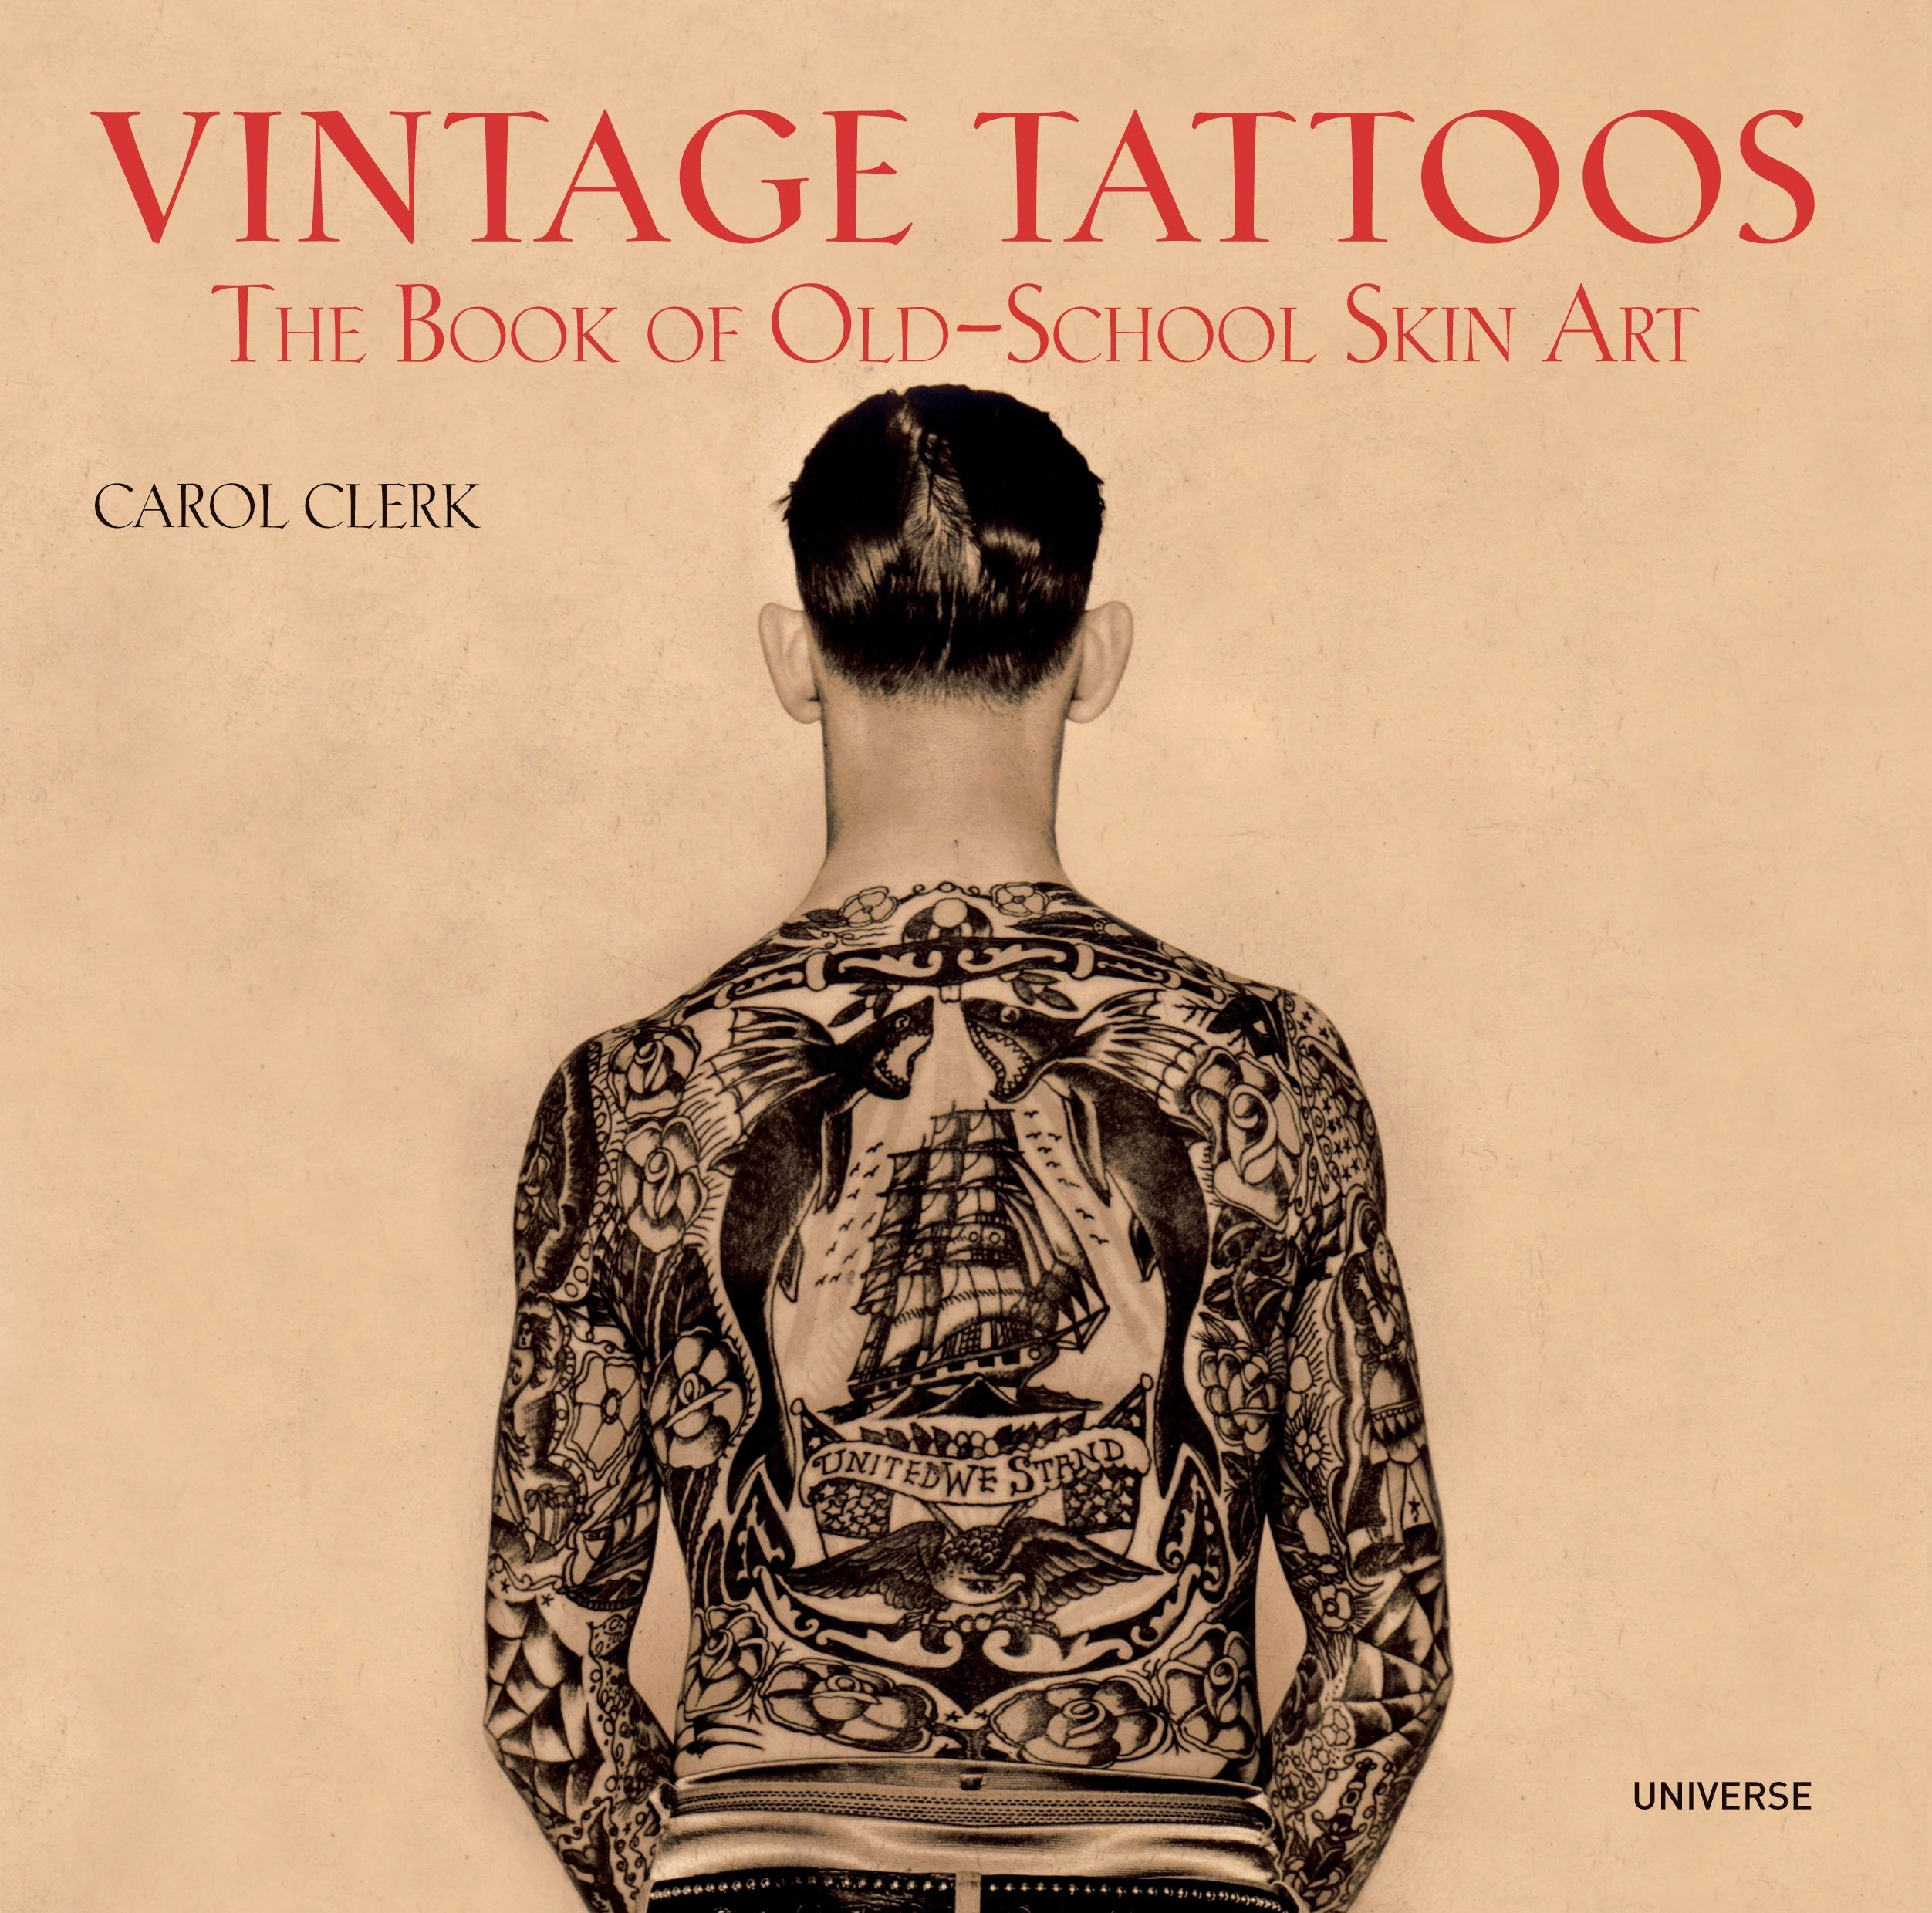 VINTAGE TATTOOS: Amazon.es: Clerk, Carol: Libros en idiomas ...